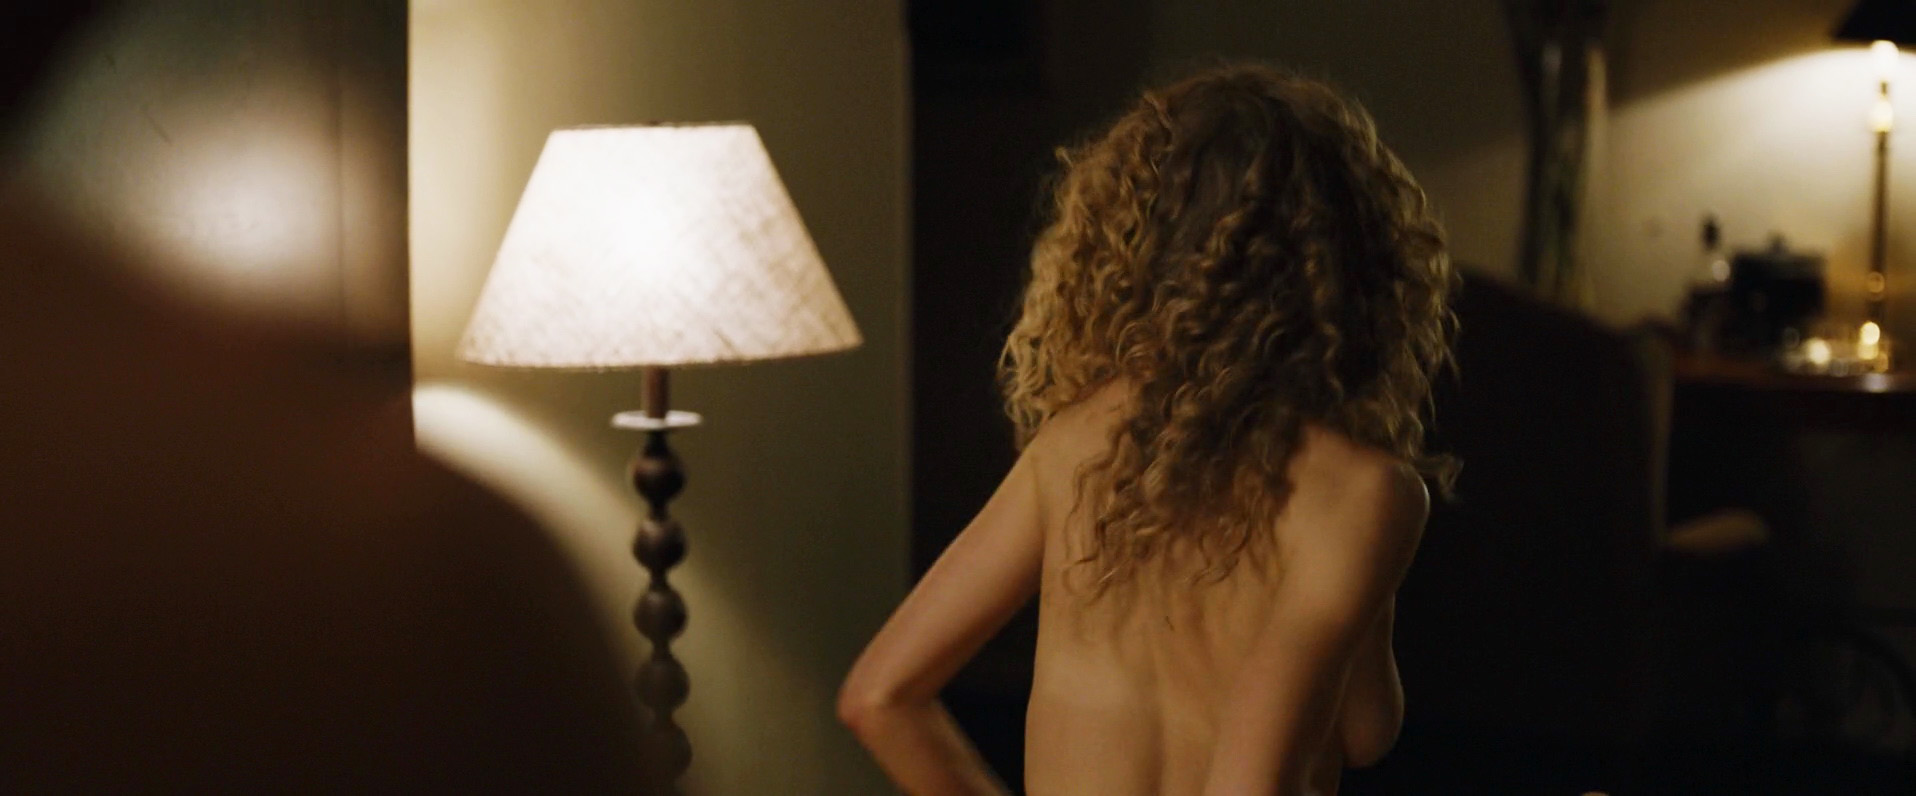 Naked Penelope Mitchell in Zipper < ANCENSORED